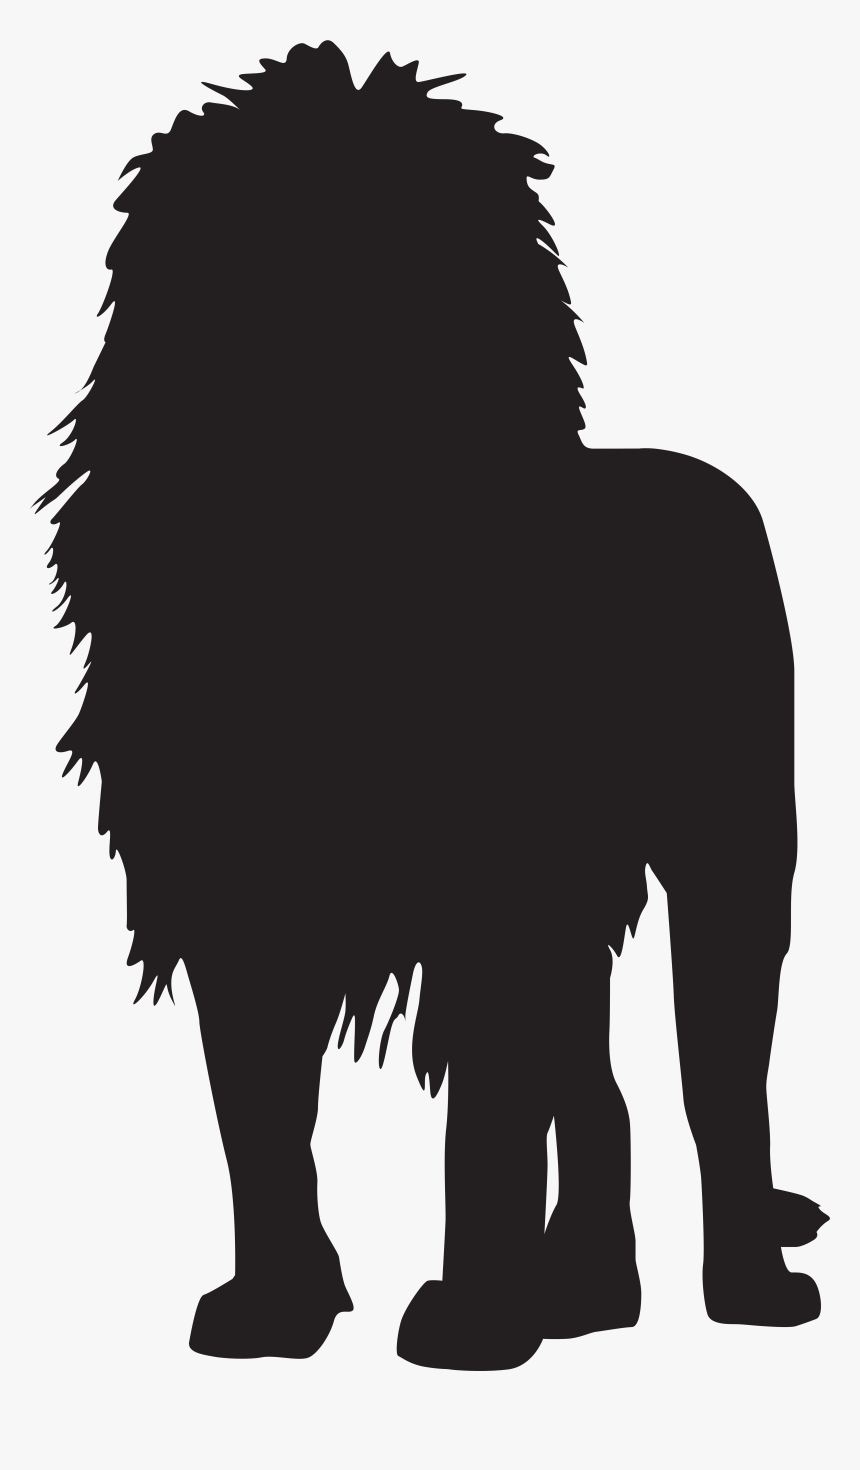 Transparent Dog Head Silhouette Png - Lion Silhouette No Background, Png Download, Free Download